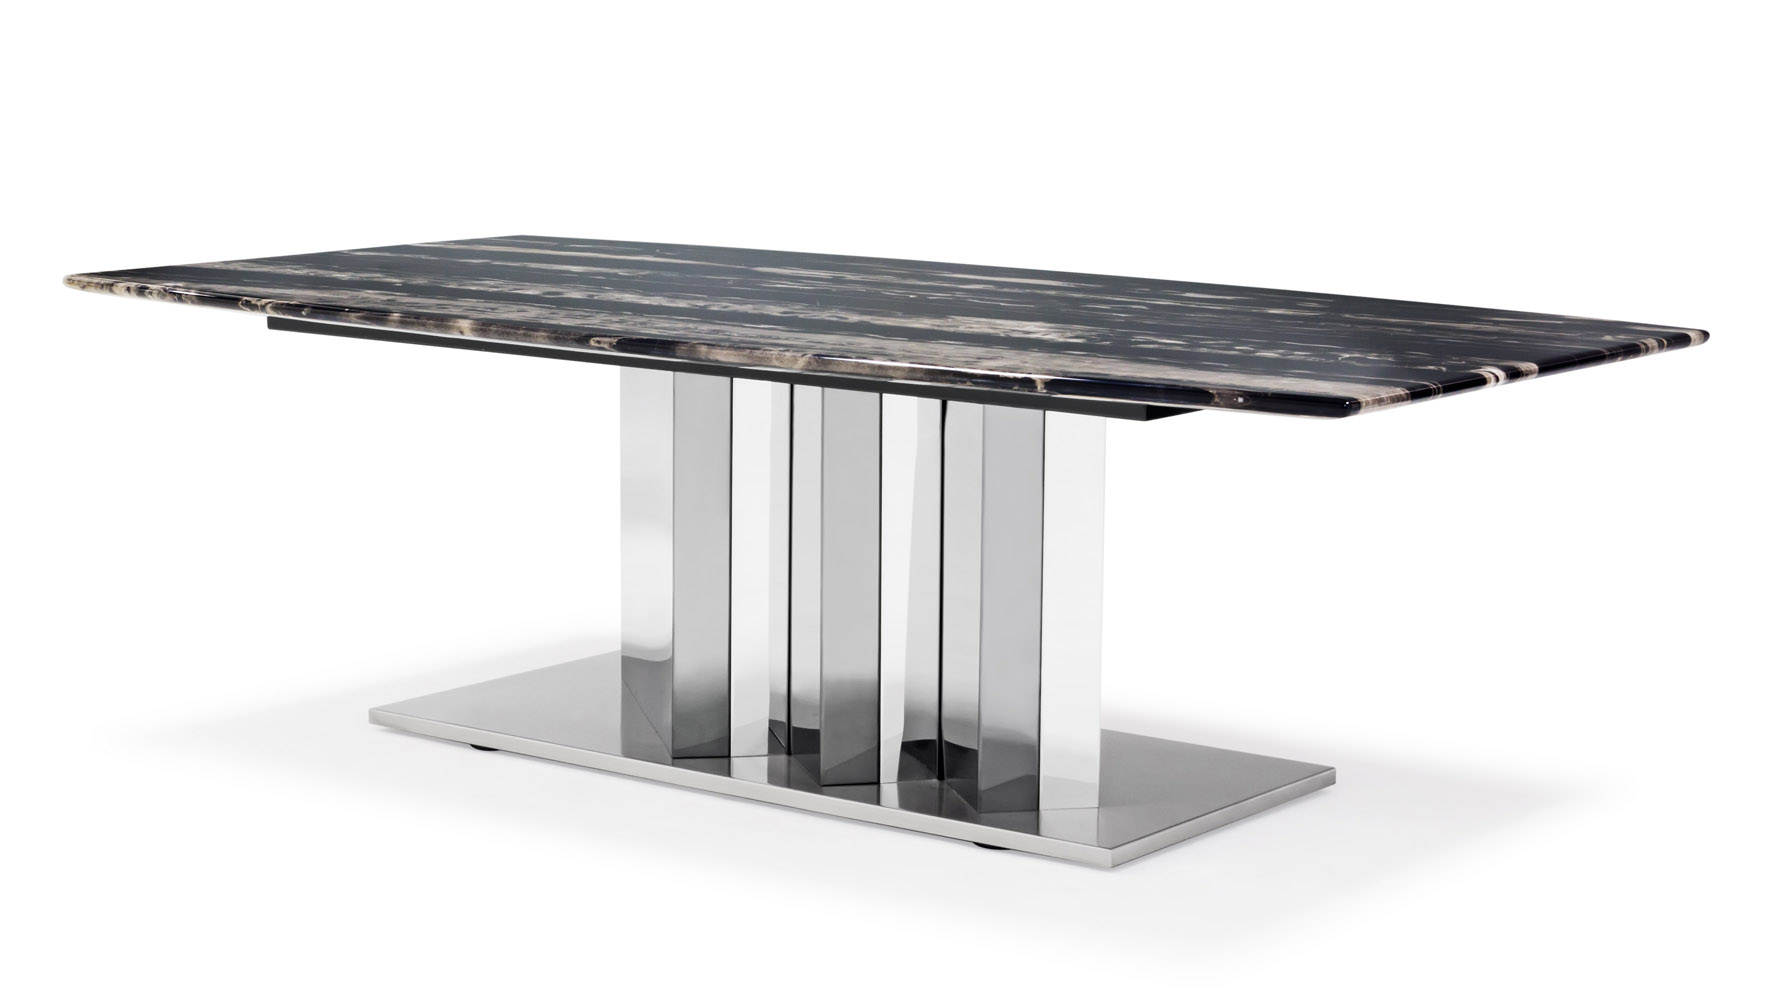 Nero Black and White Marble Coffee Table with Polished Stainless